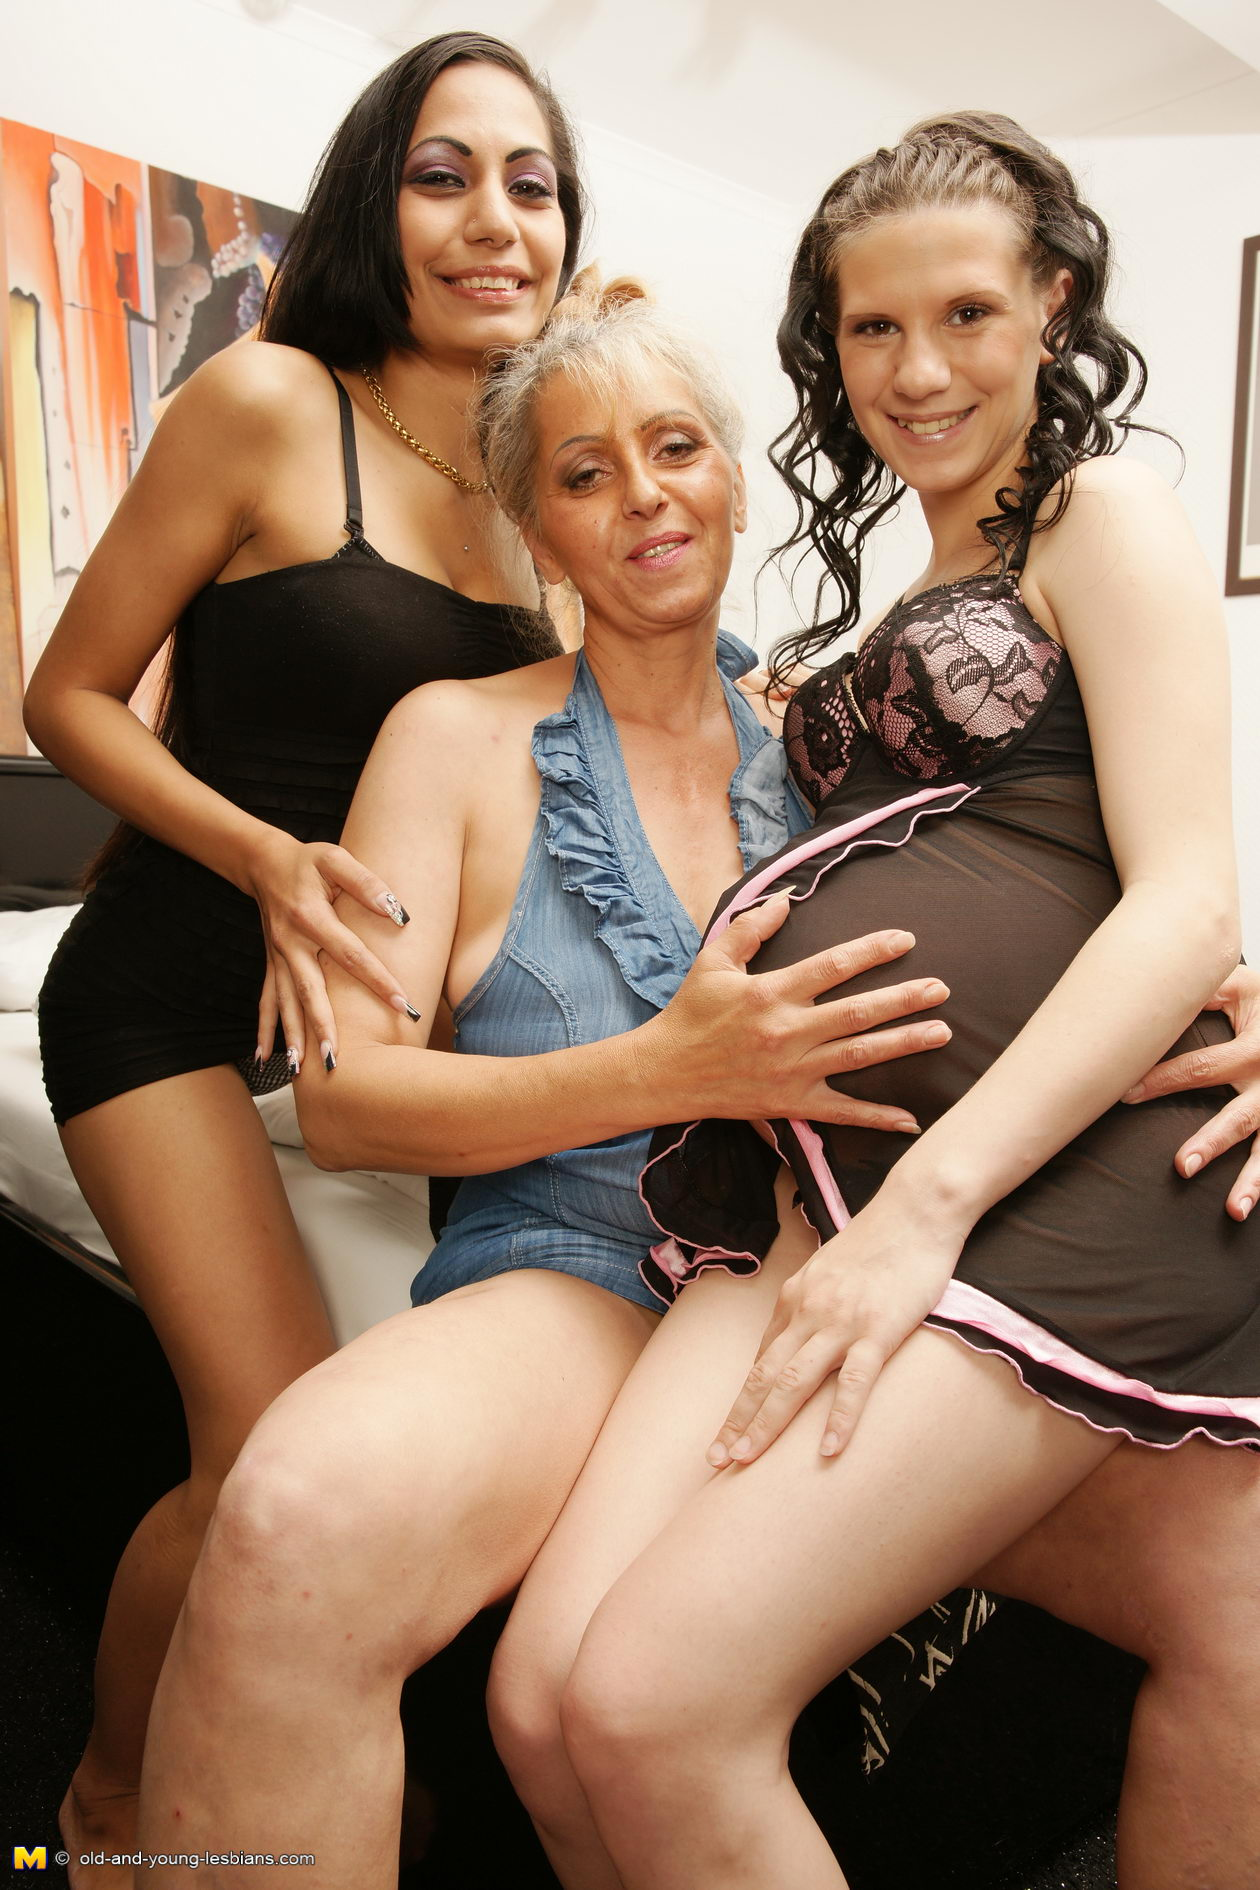 Oldandyoung Lesbian Porn old and young lesbian two old and young lesbians have fun